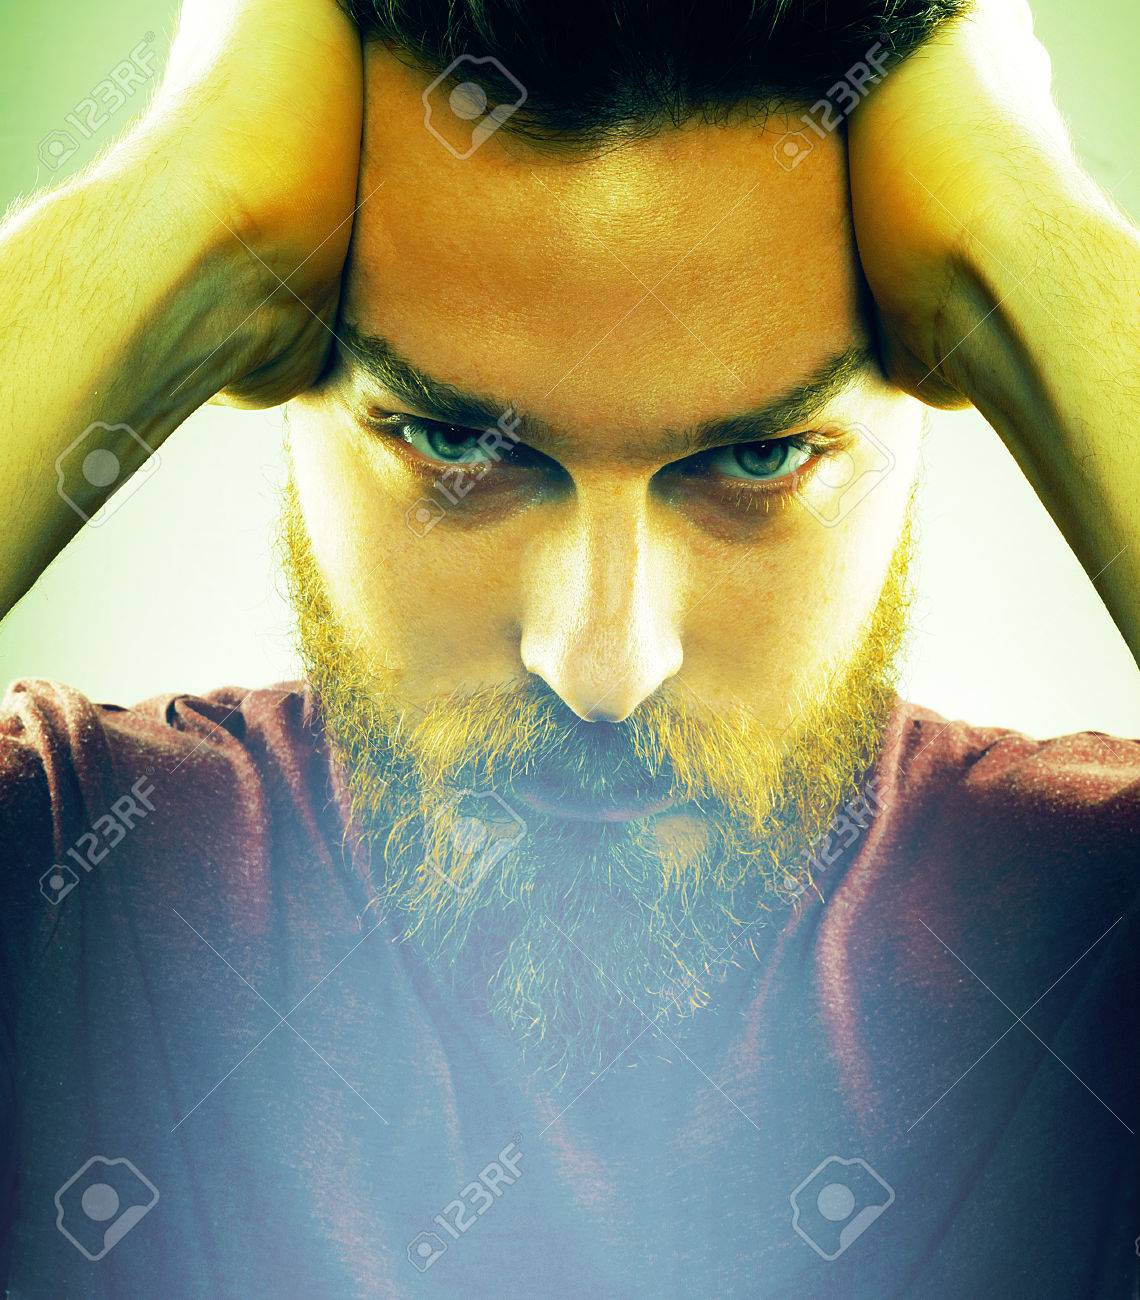 Face of handsome young man with hipster style beard Stock Photo - 74890216